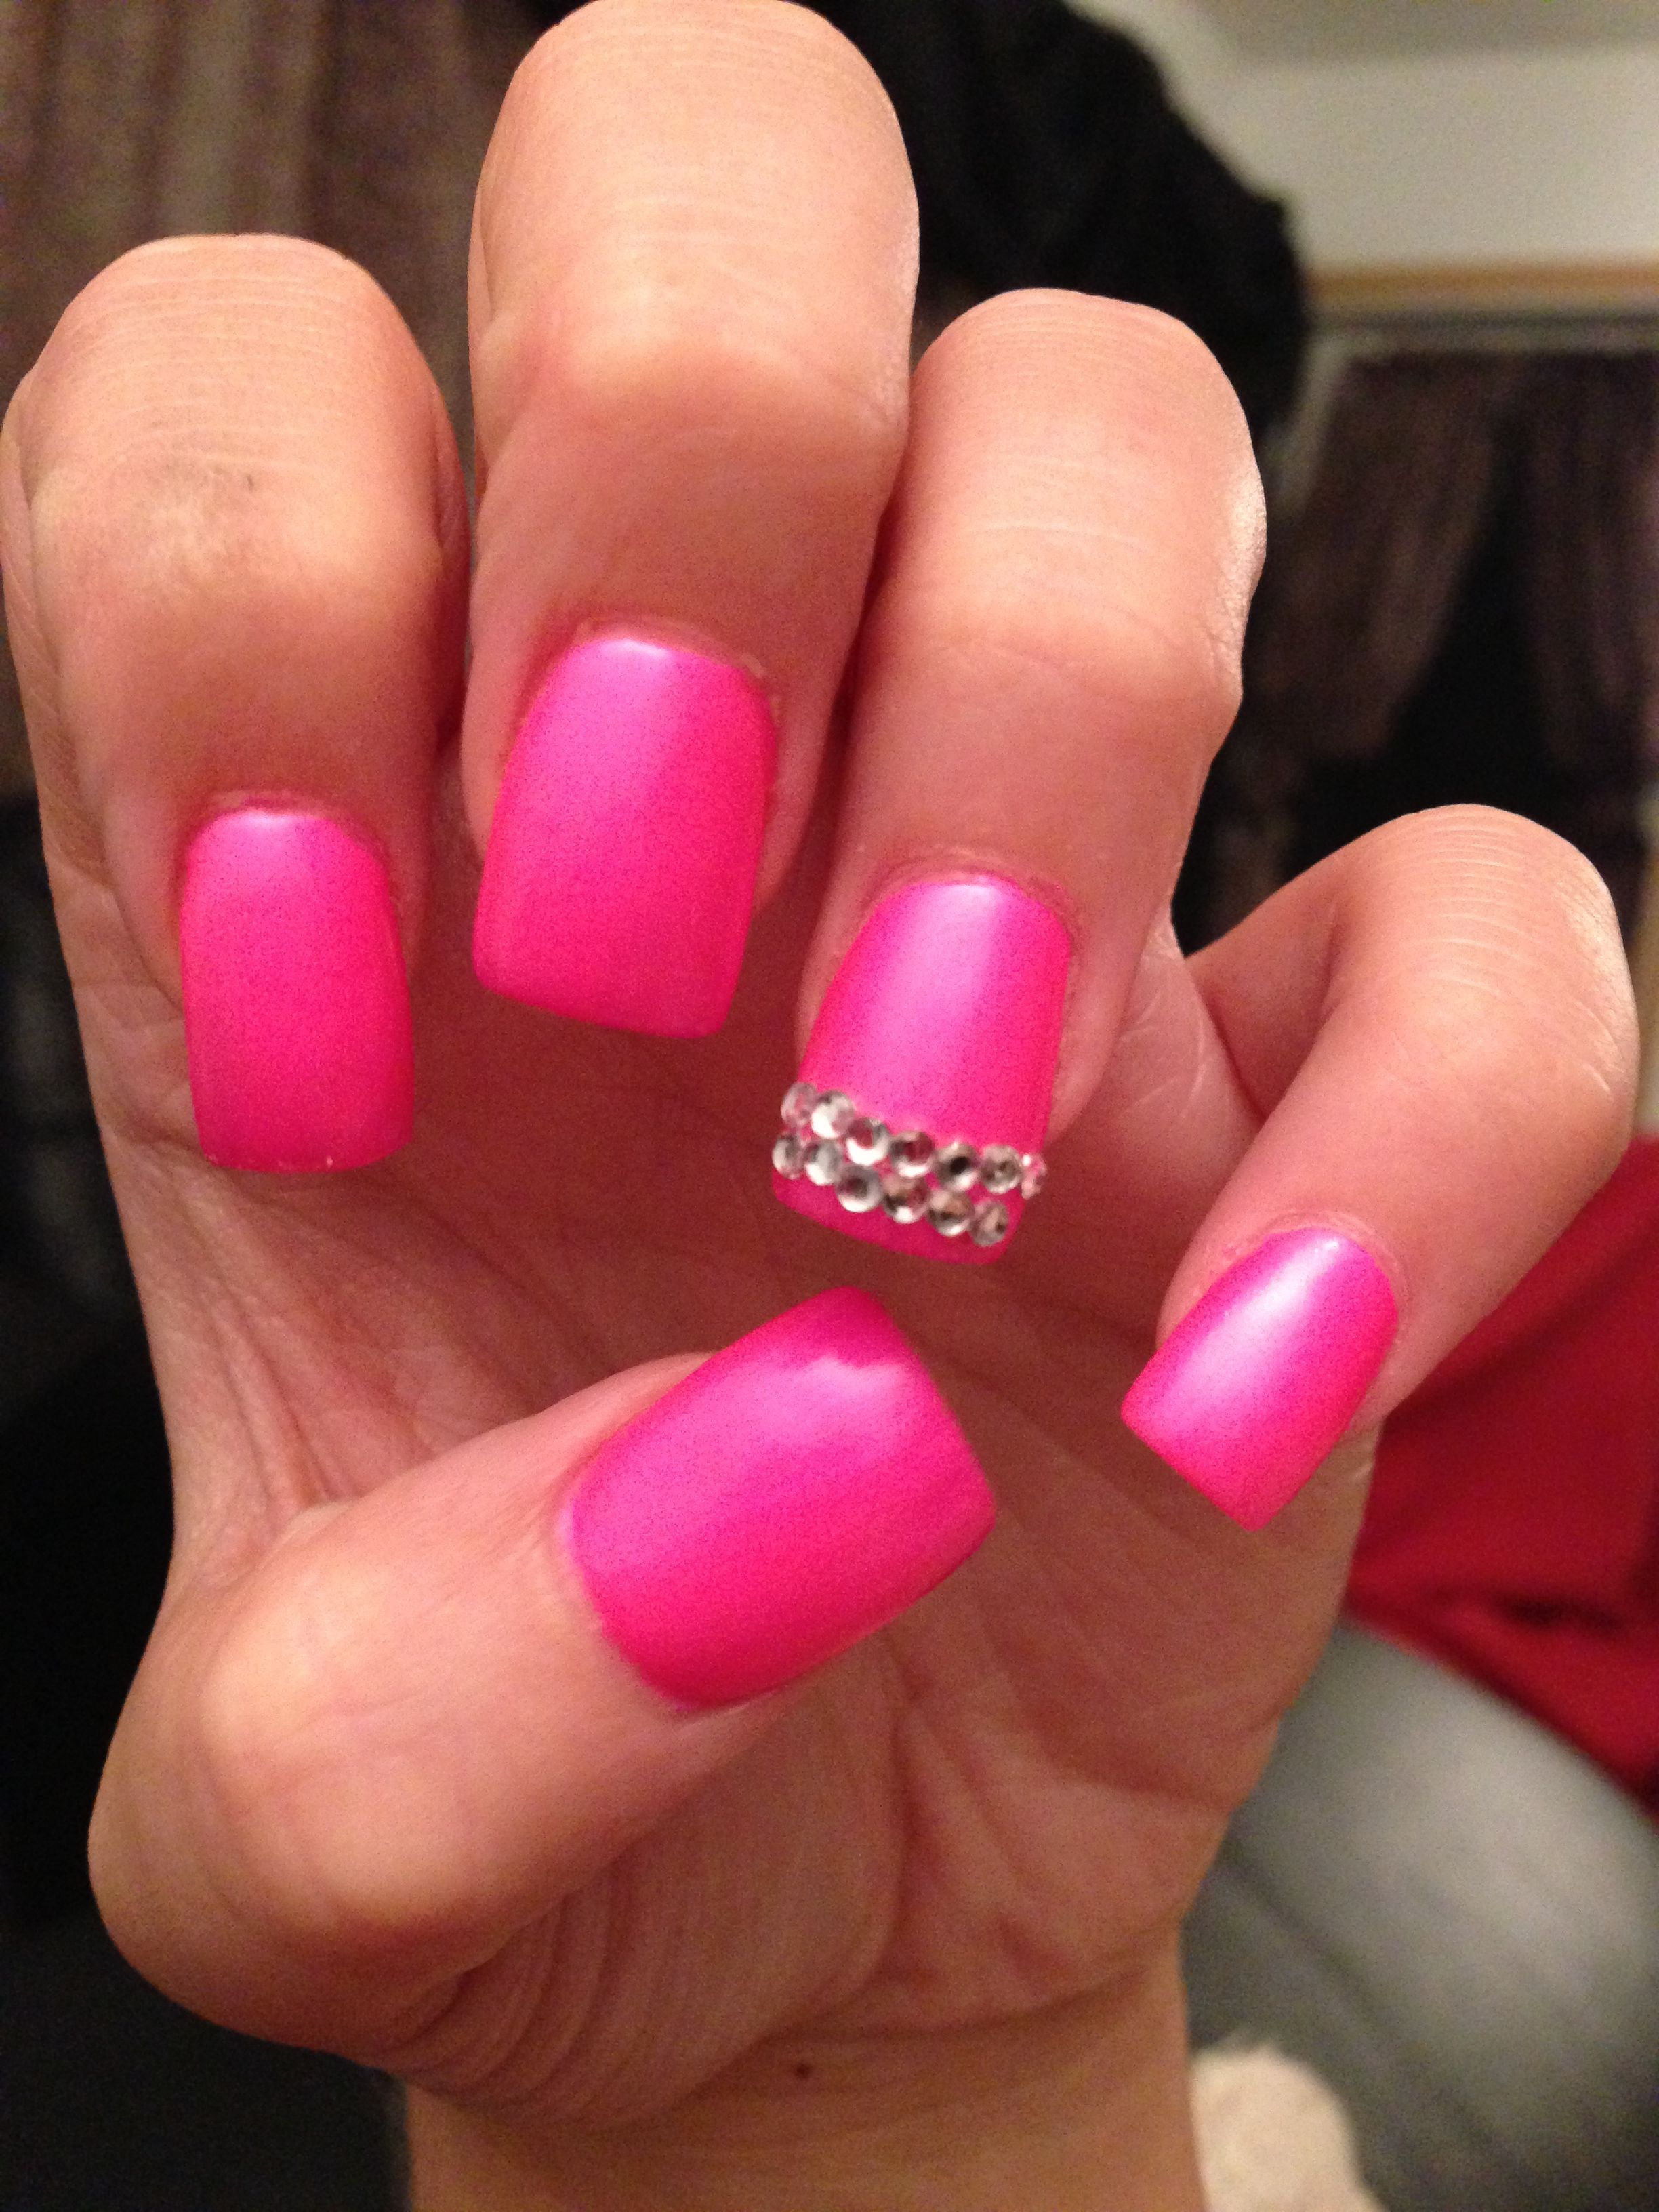 neon bright pink nails with rhinestones